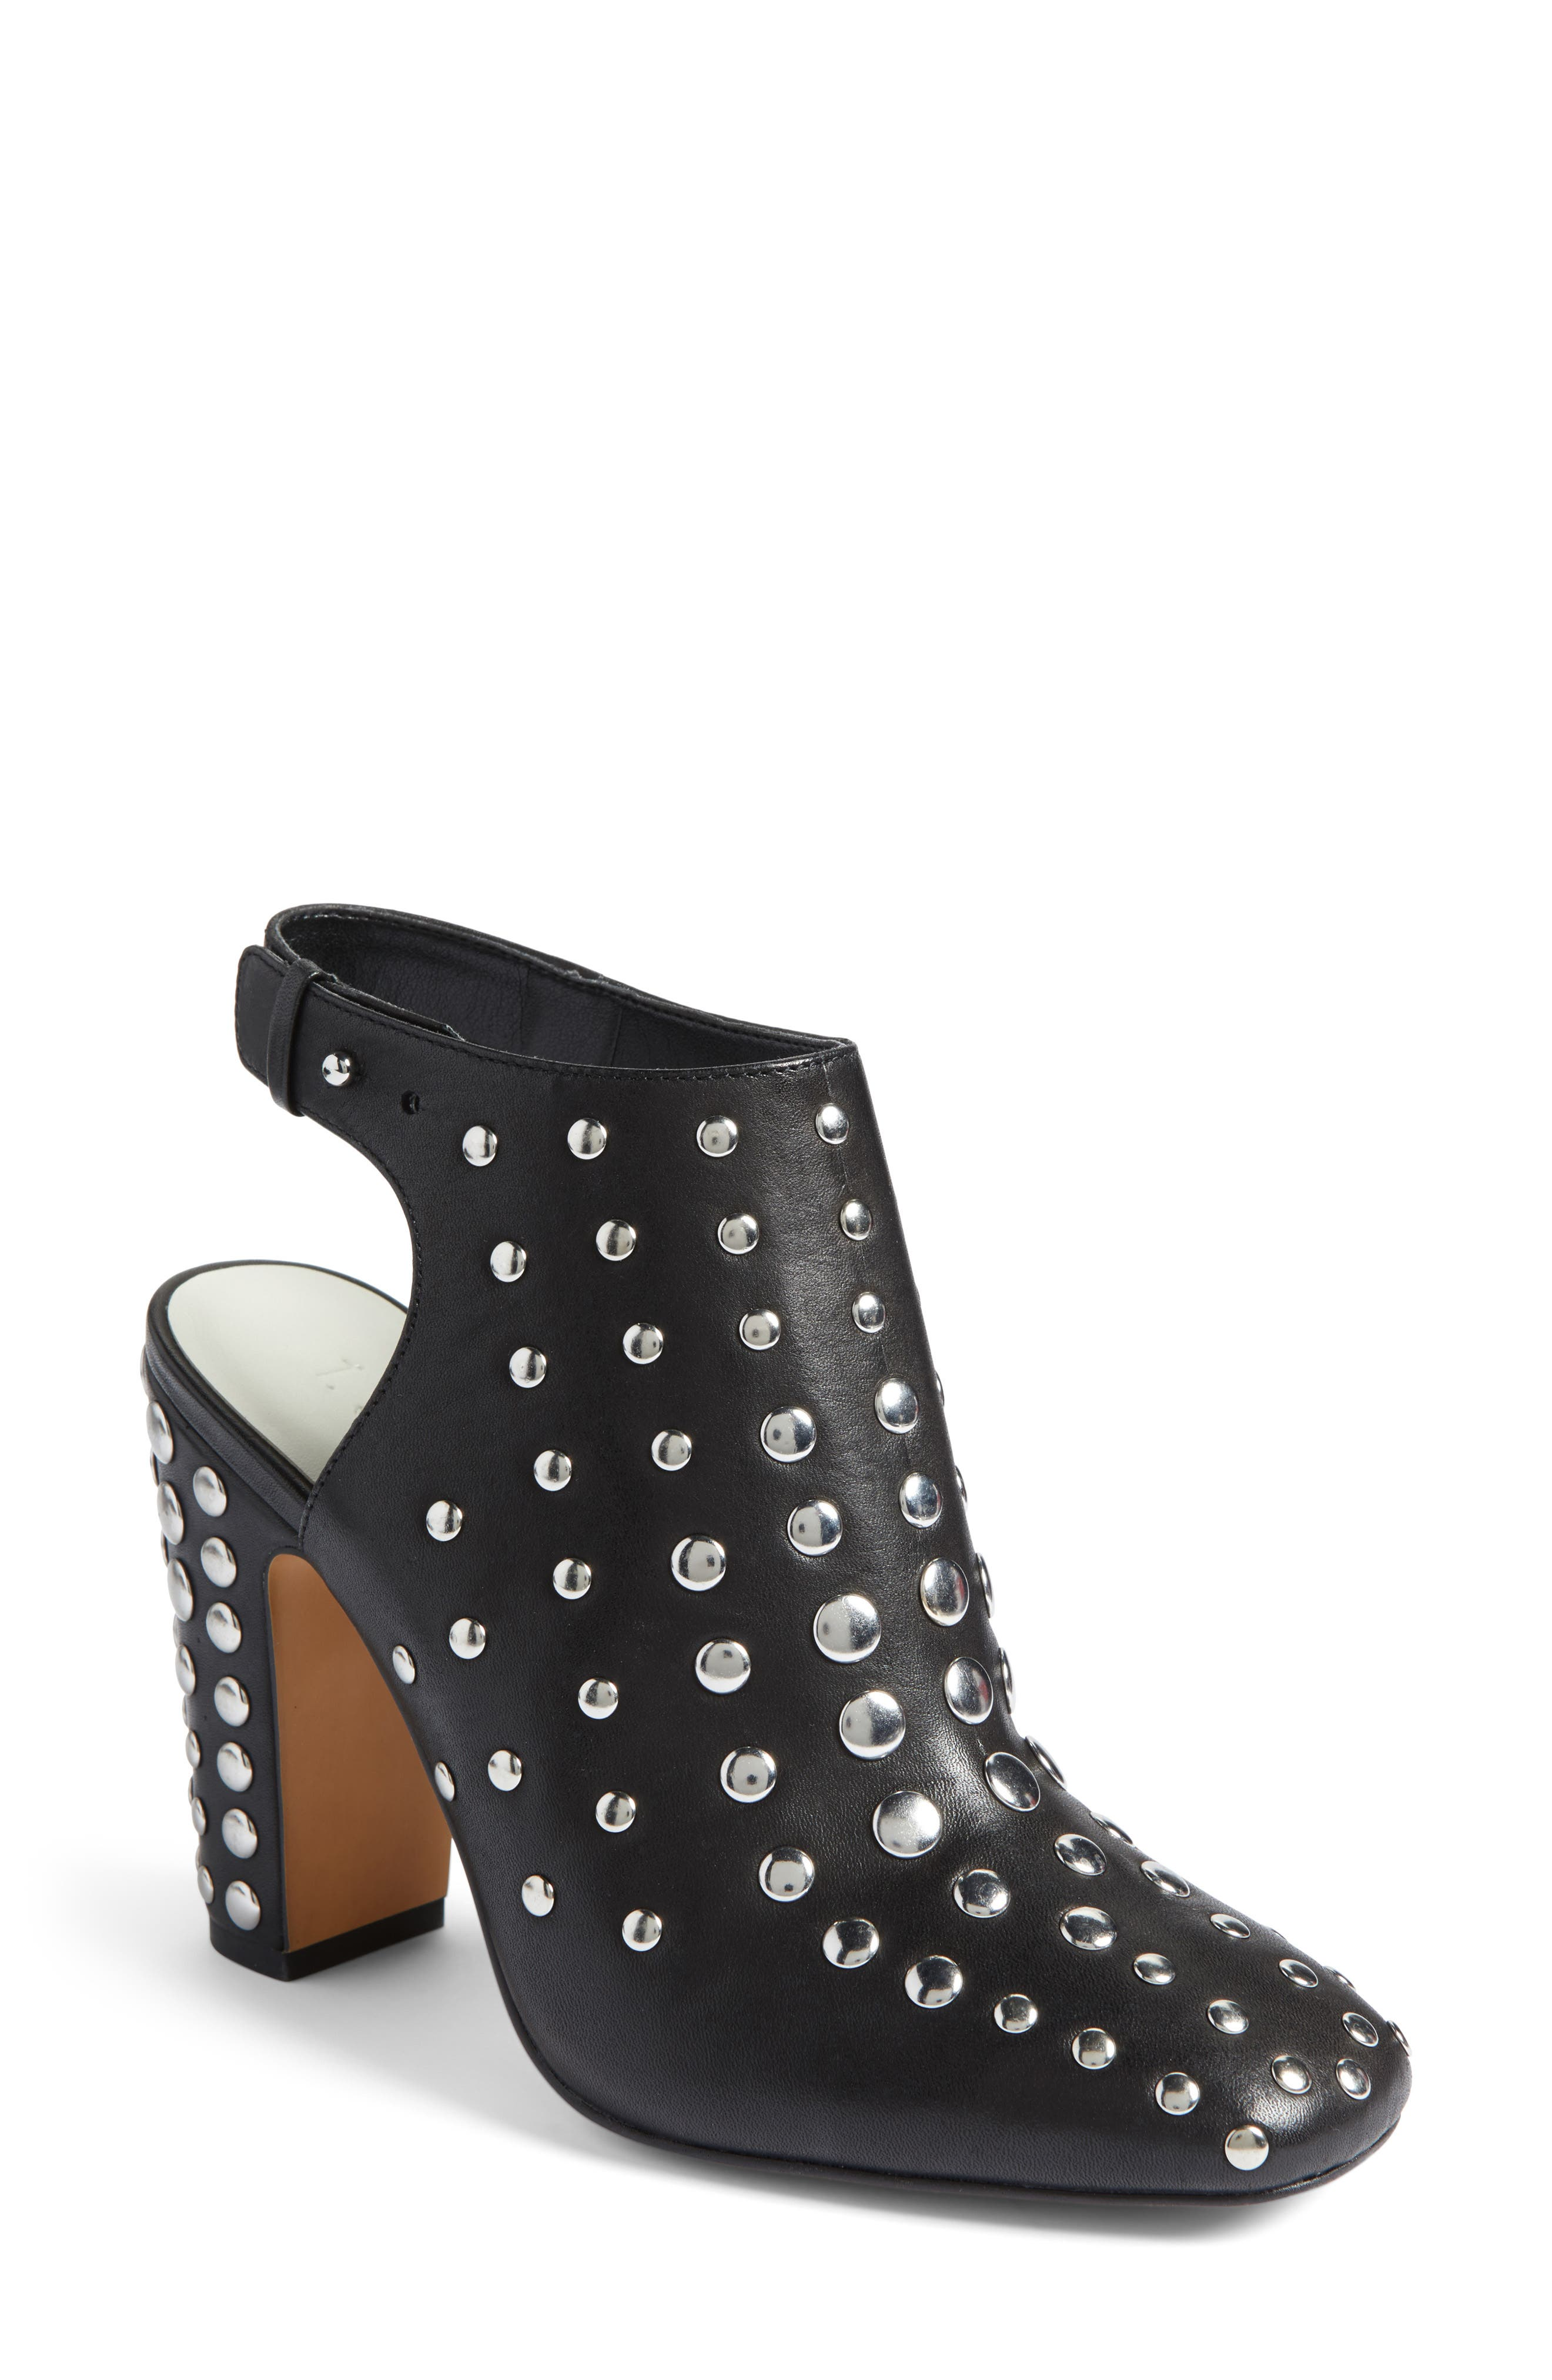 Main Image - 1.STATE Ryel Studded Bootie (Women)